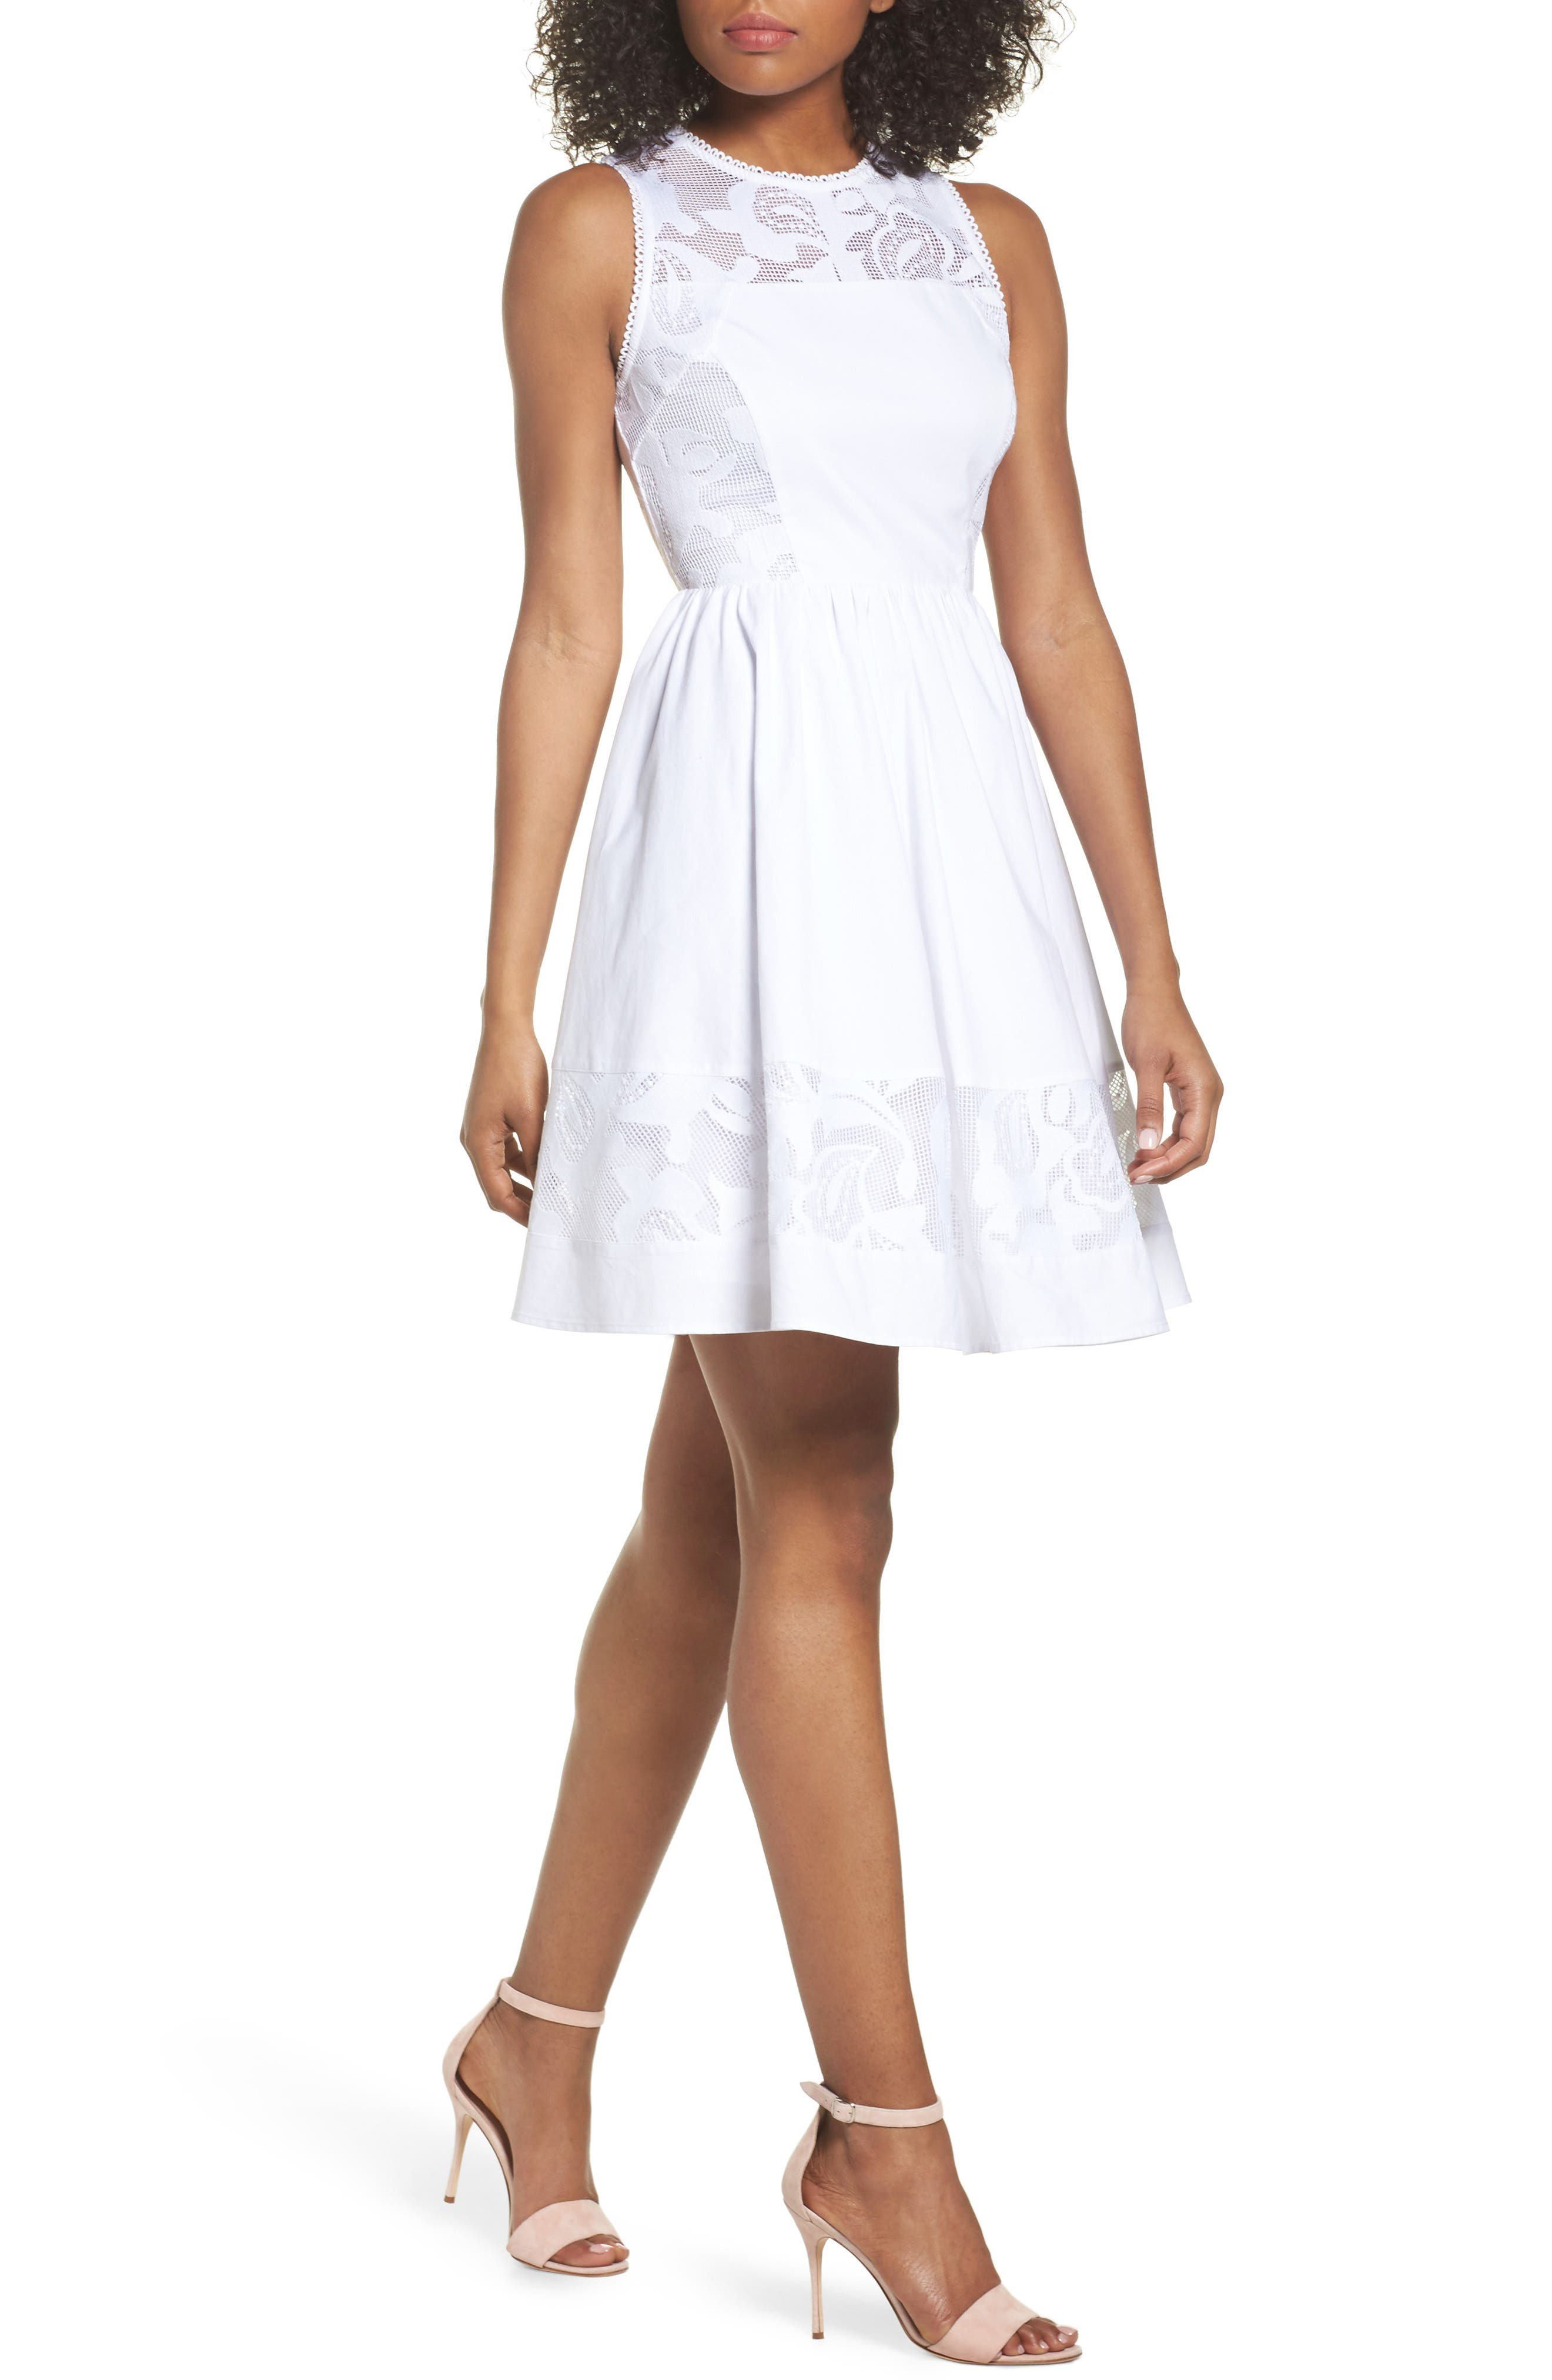 Main Image - Chelsea28 Lace Fit & Flare Dress